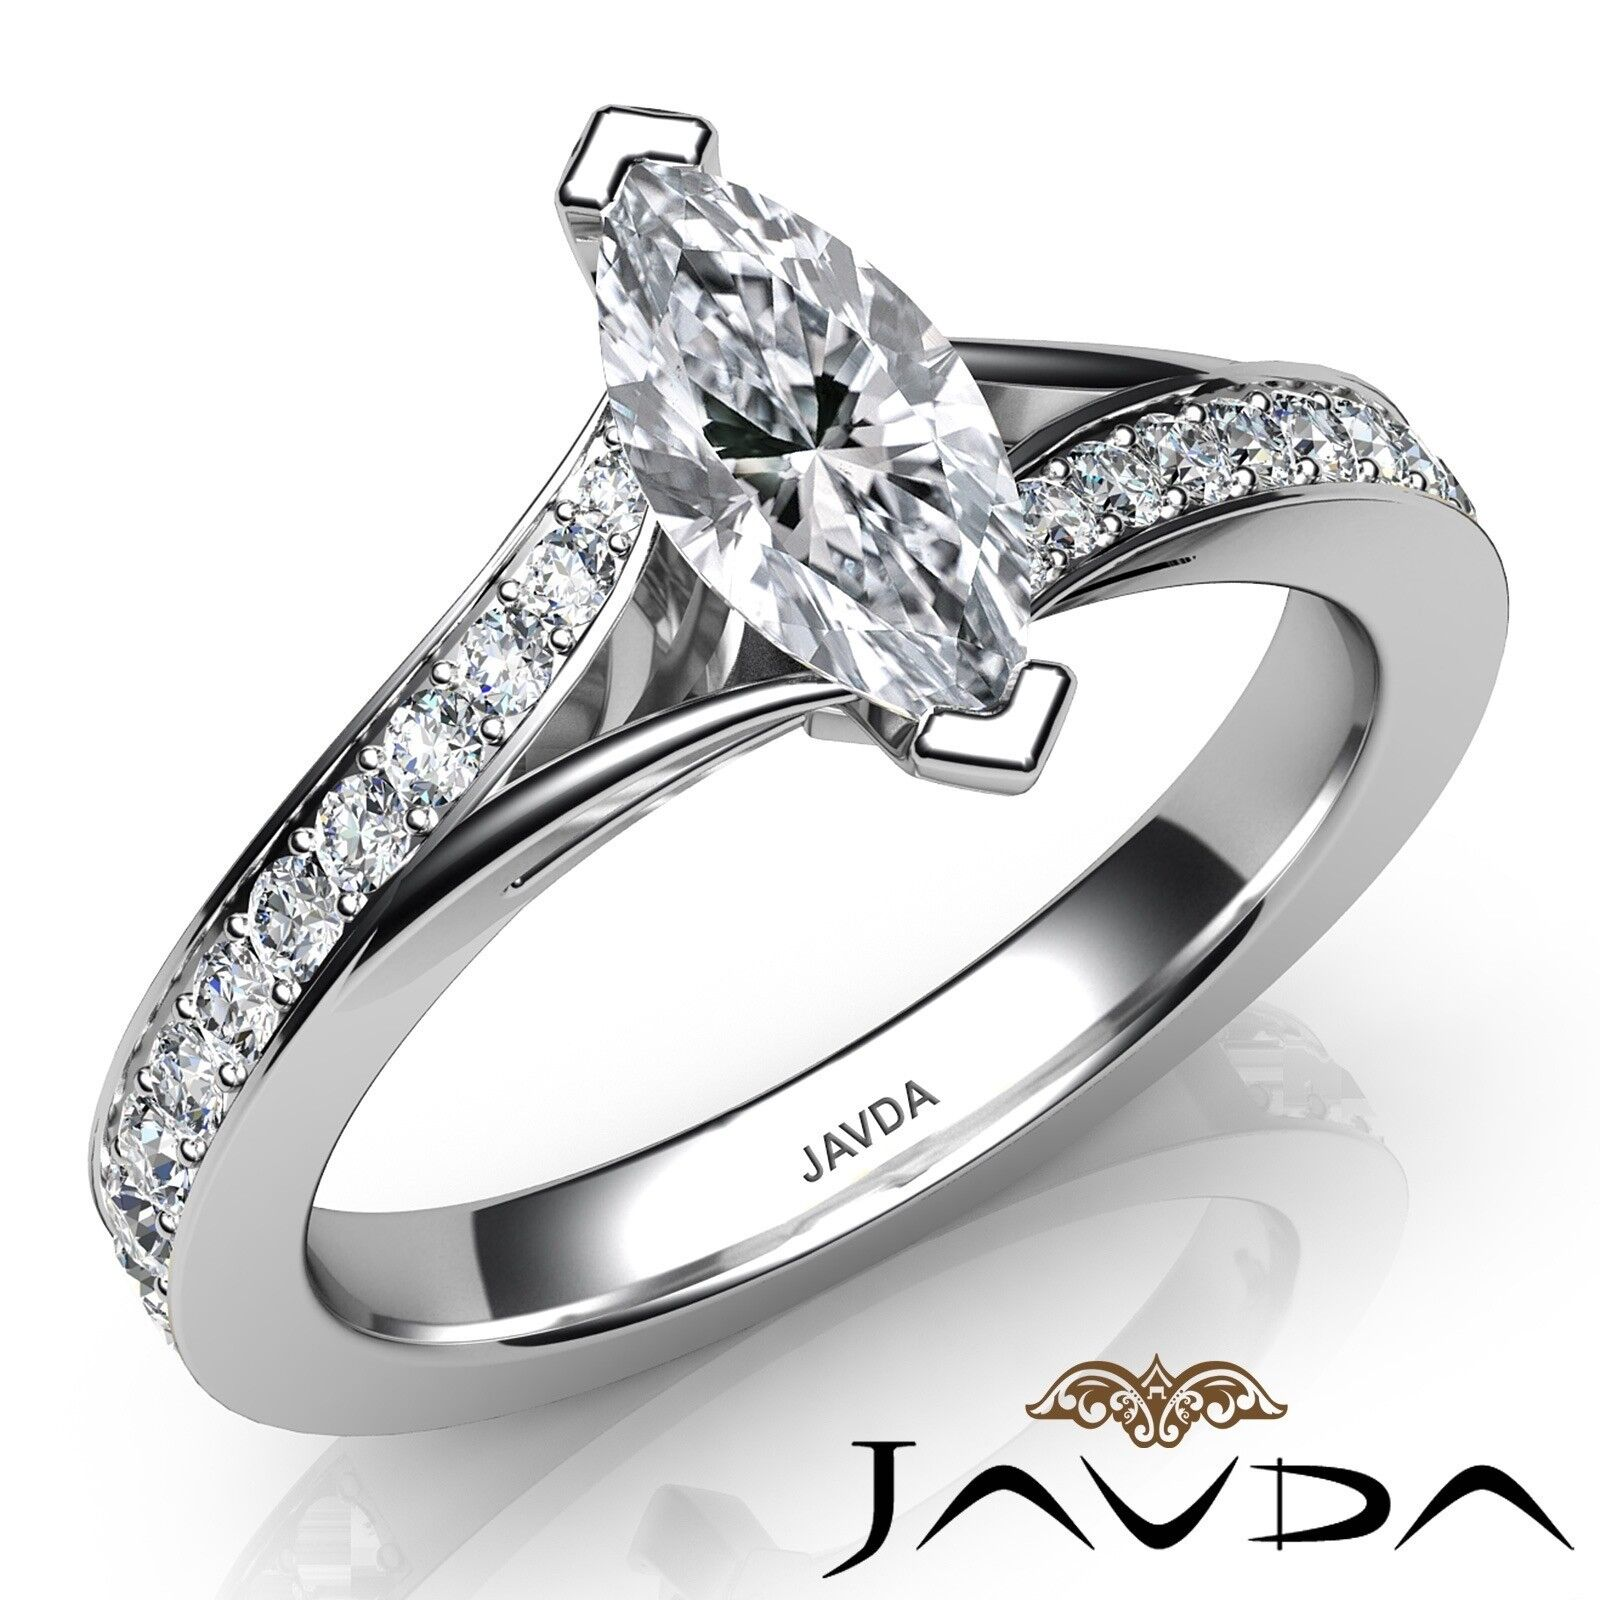 1.48ctw Classic Sidestone Marquise Diamond Engagement Ring GIA D-IF White Gold